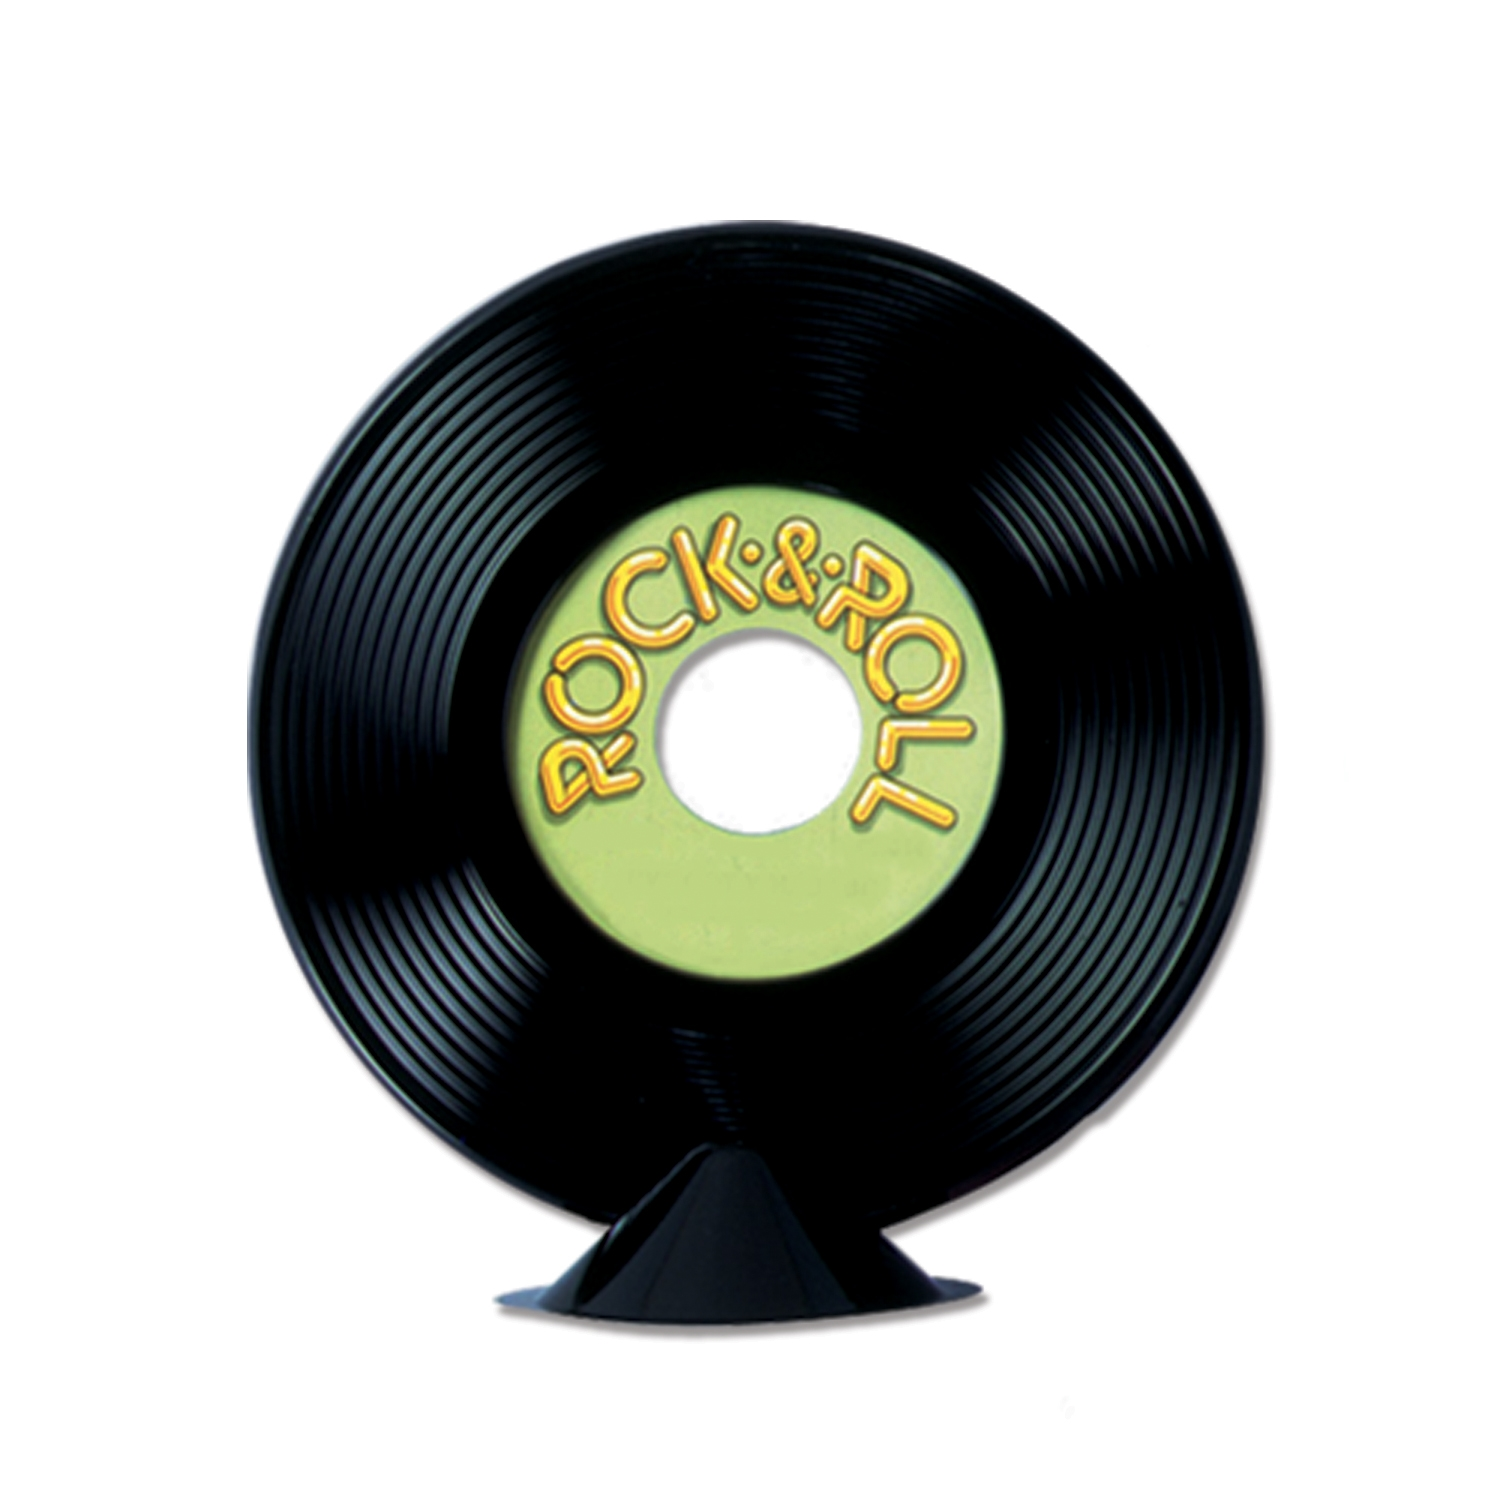 black plastic record with a green label that reads Rock & Roll that sits on the table as a centerpiece